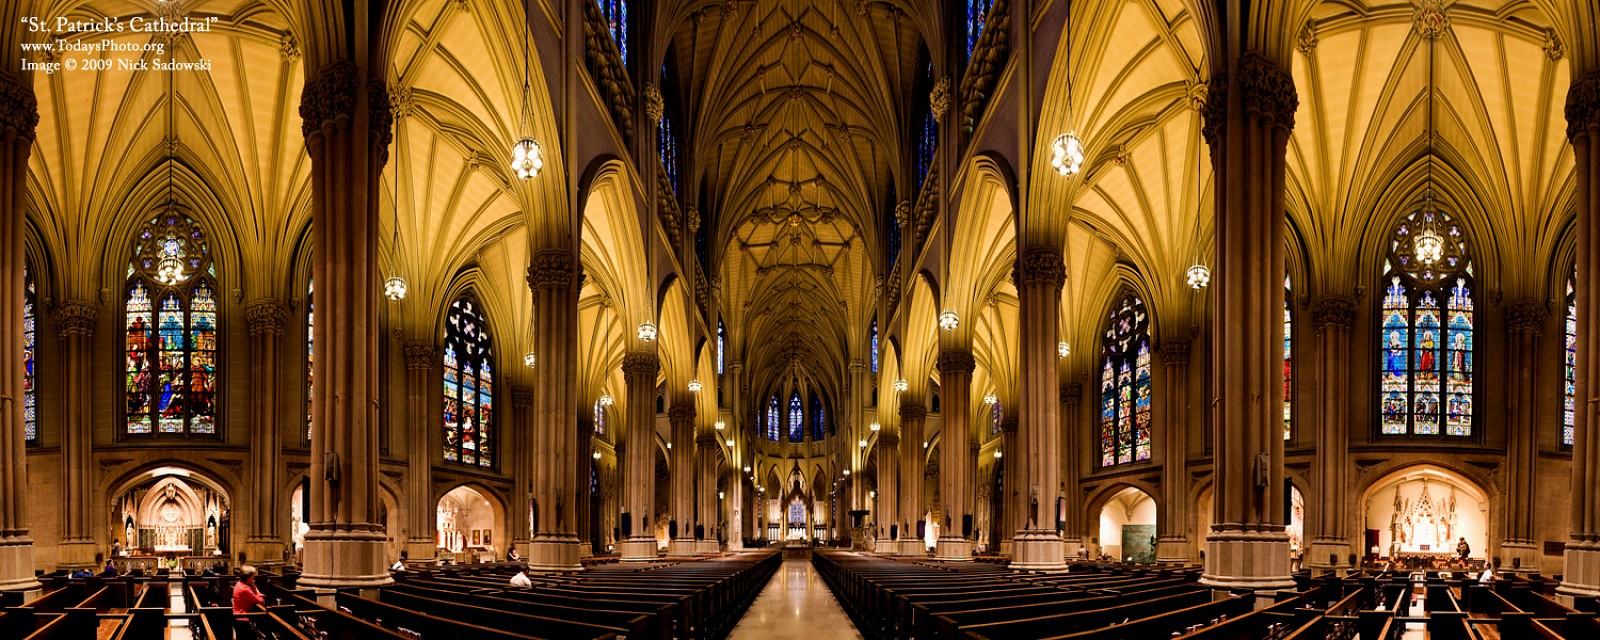 - St. Patrick's